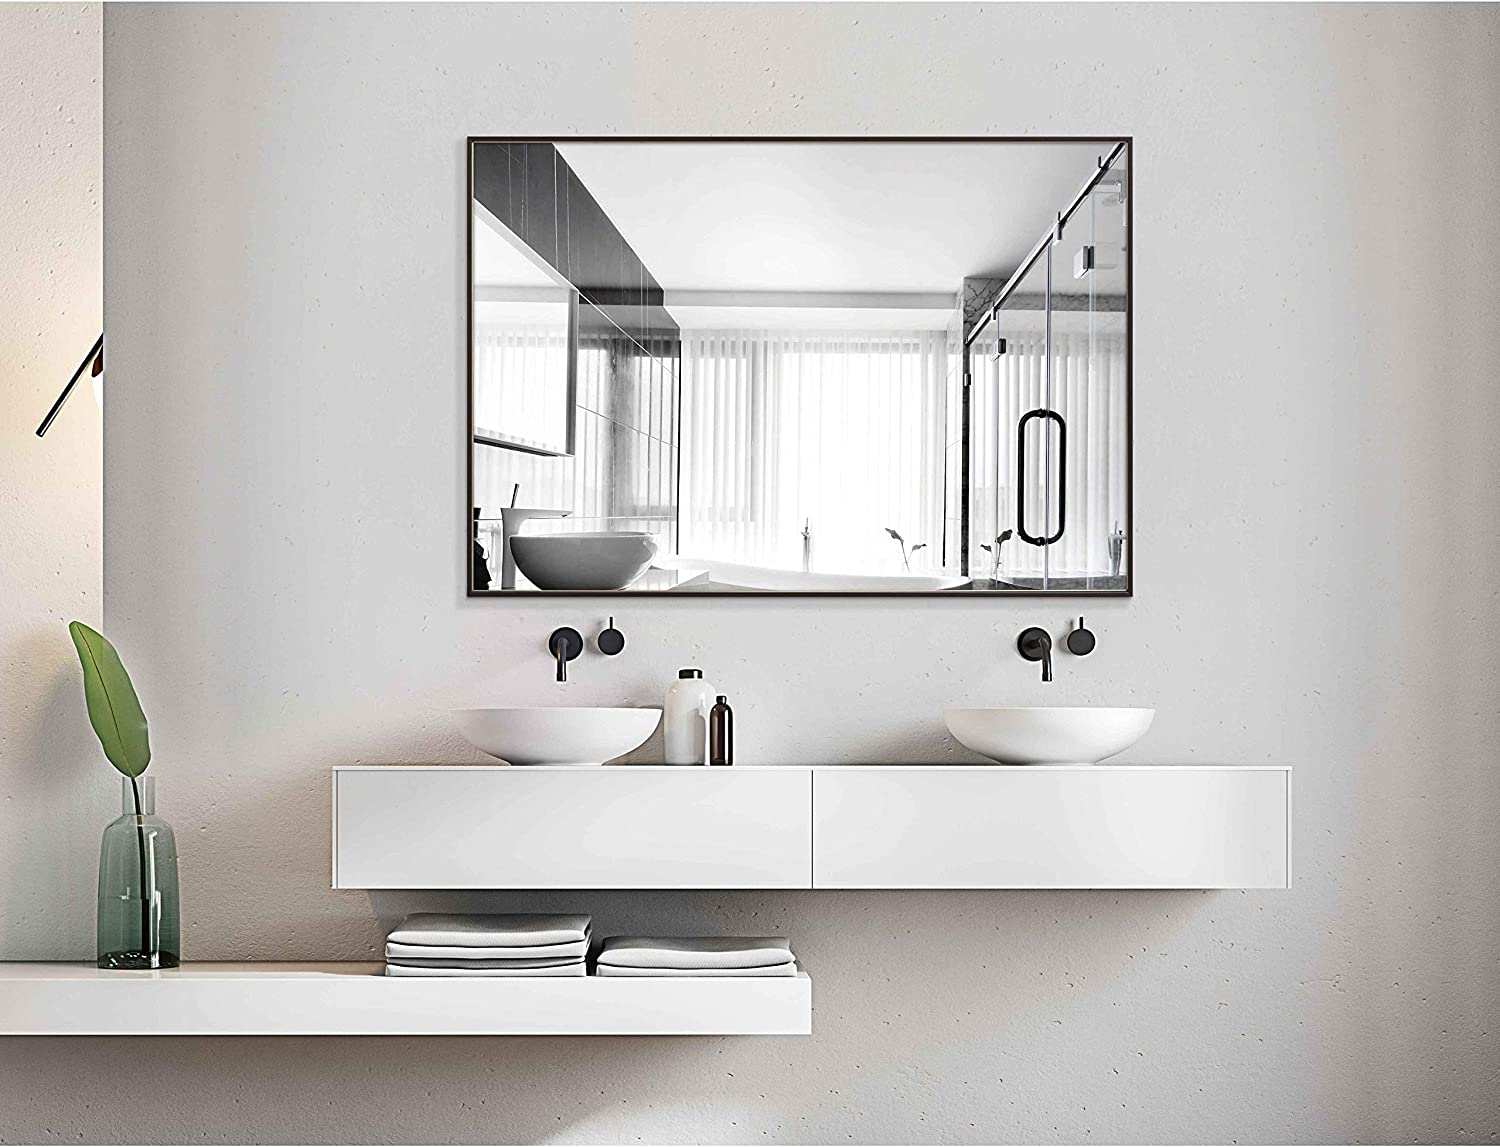 H&A Bathroom Mirrors Wall Mounted, Modern Black Frame Mirror for Bathroom,  Bedroom, Entryways, Living Room Hanging Horizontal or Vertical Commercial